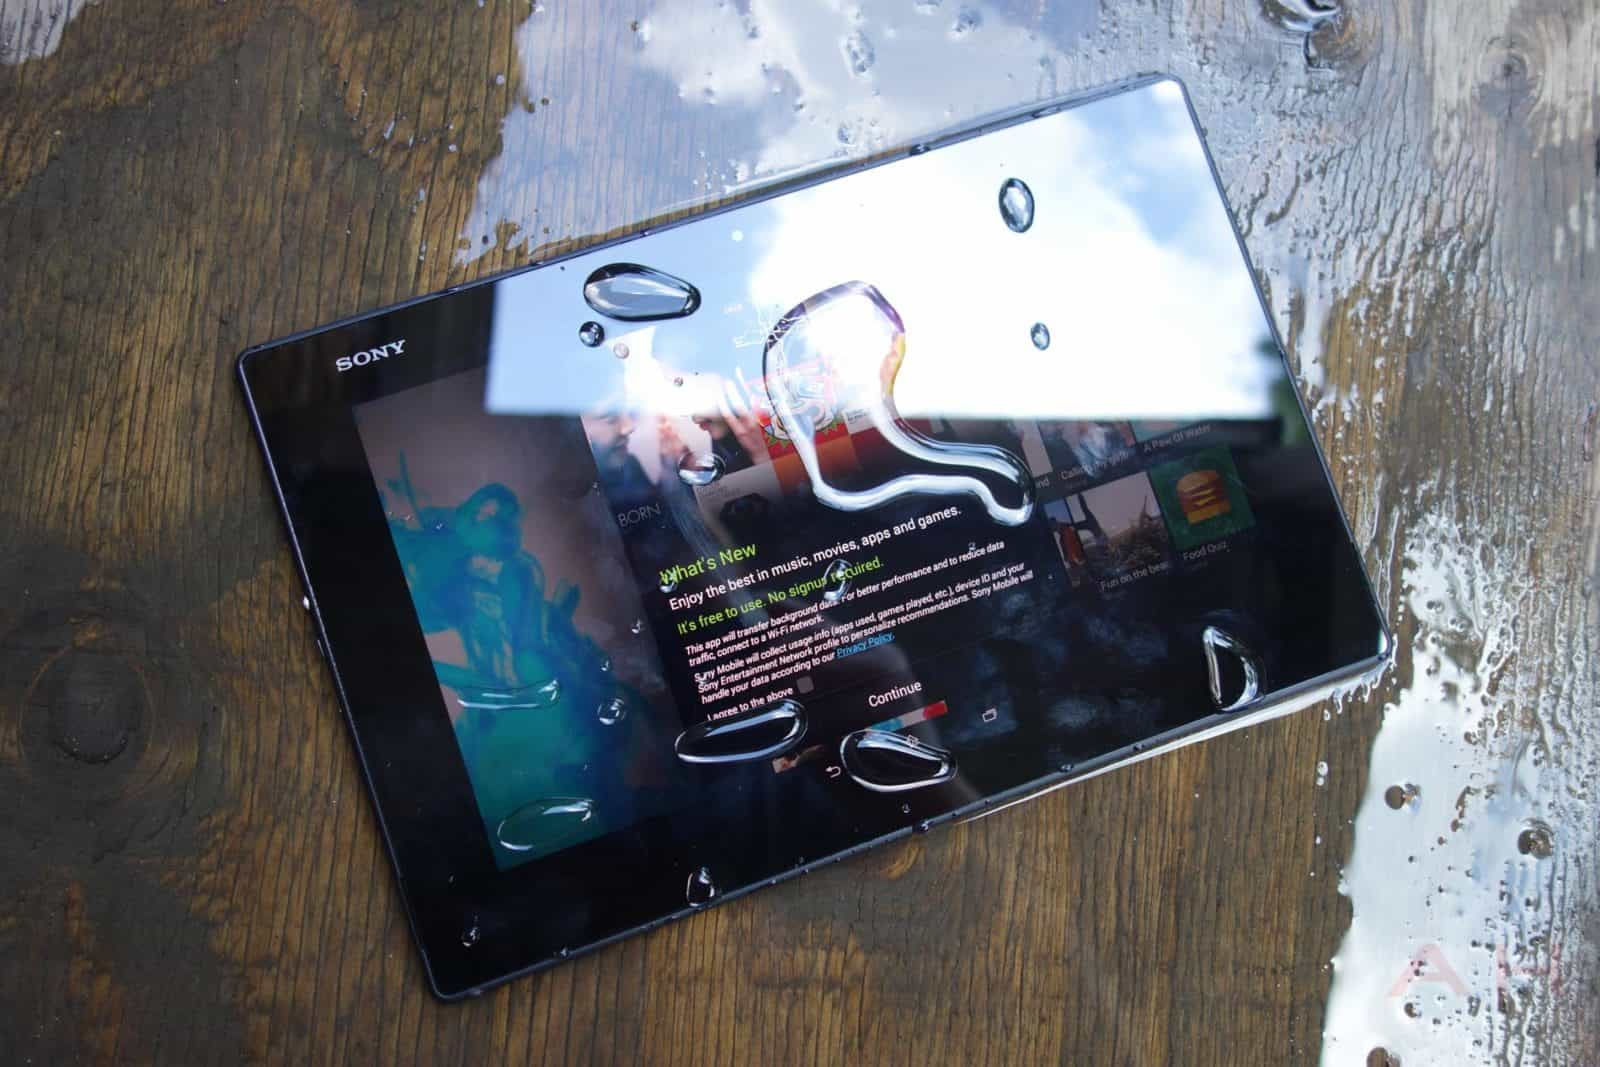 Sony-Xperia-Z2-Tablet-Verizon-AH-15